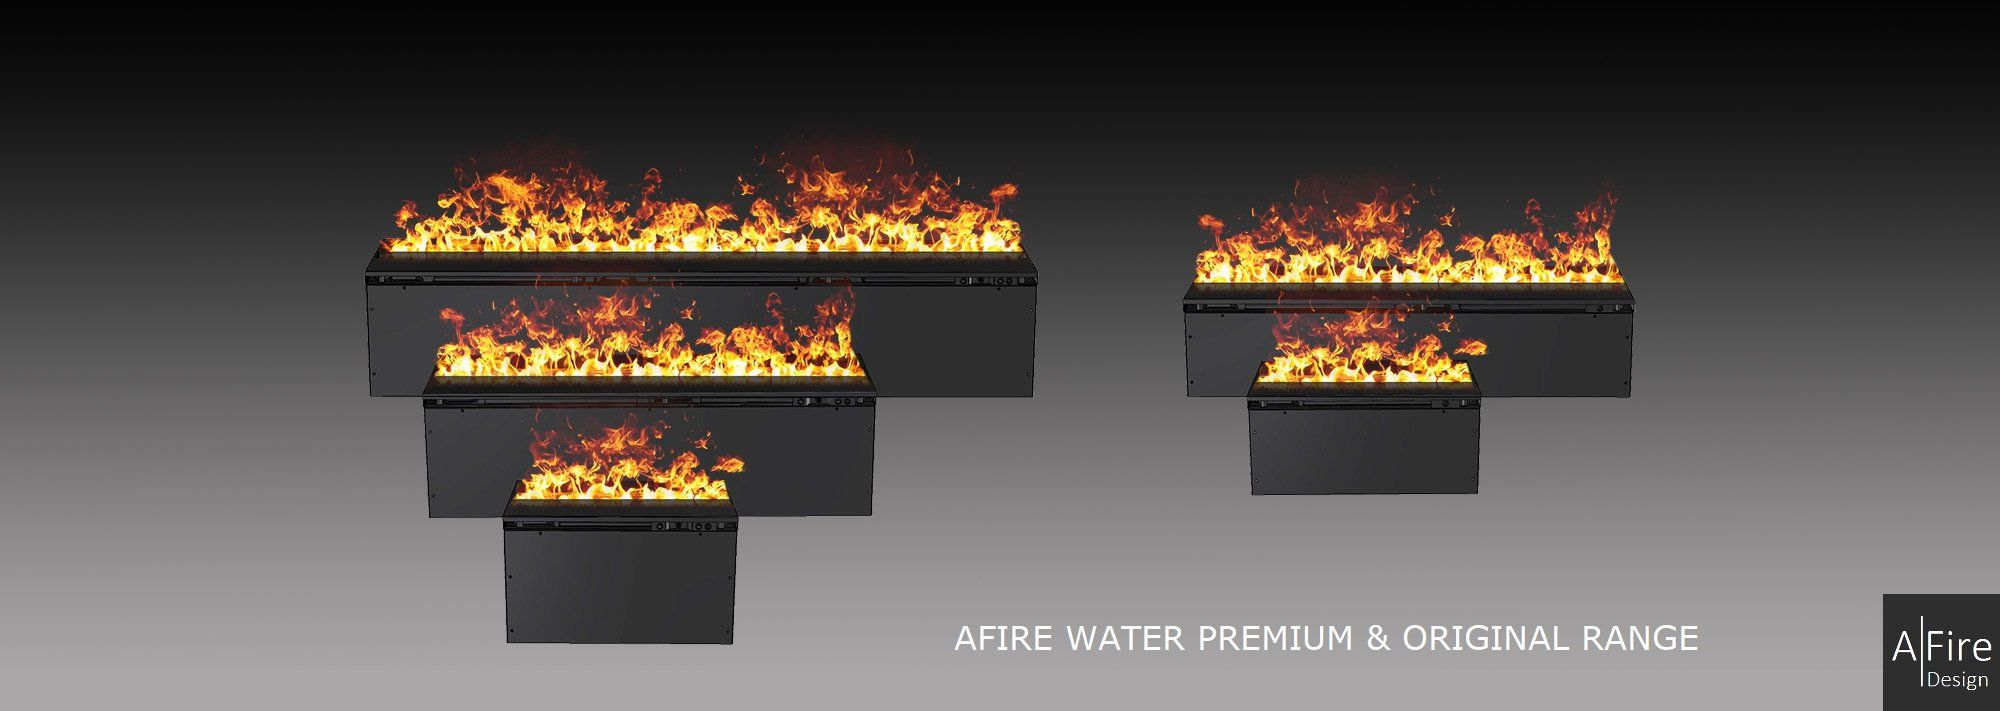 Water Vapor Fireplace 3d Electric Steam Fireplace Cold Flames Afire Electric Fireplace Insert Fireplace Inserts Electric Fireplace